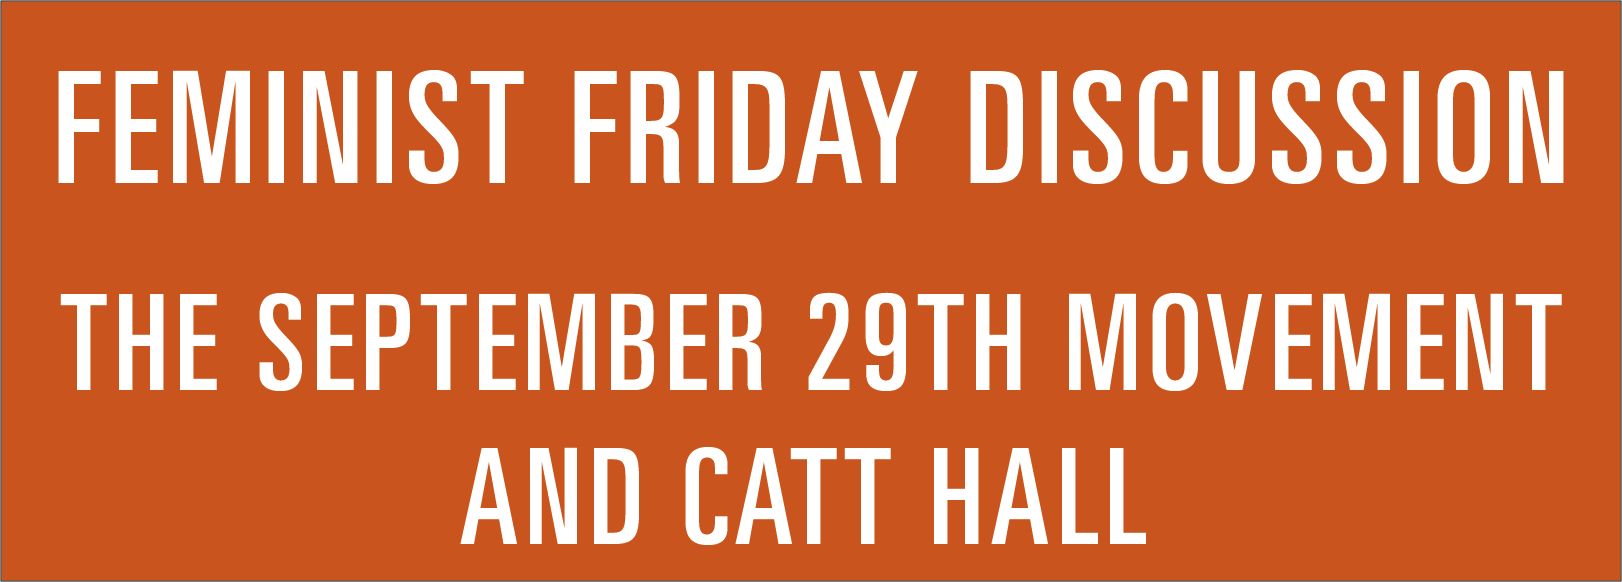 Link tile for Feminist Friday discussion video from August 7, 2020 on the September 29th Movement and Catt Hall